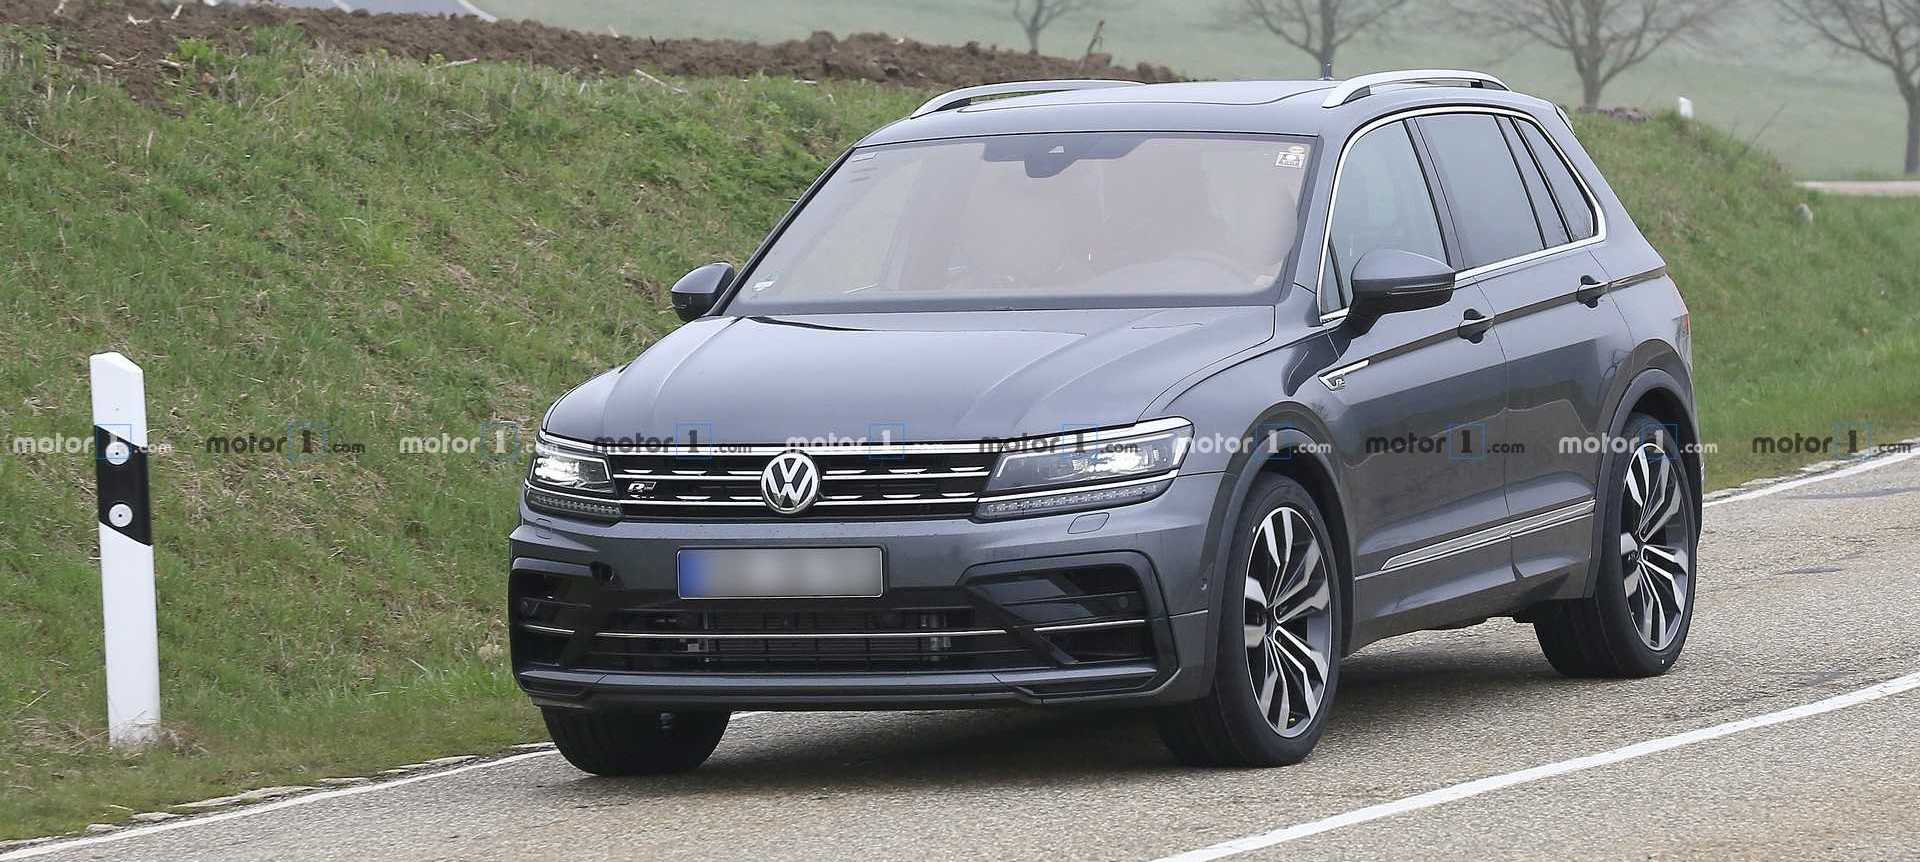 VW Tiguan Facelift and Tiguan R Concept Due In 2020